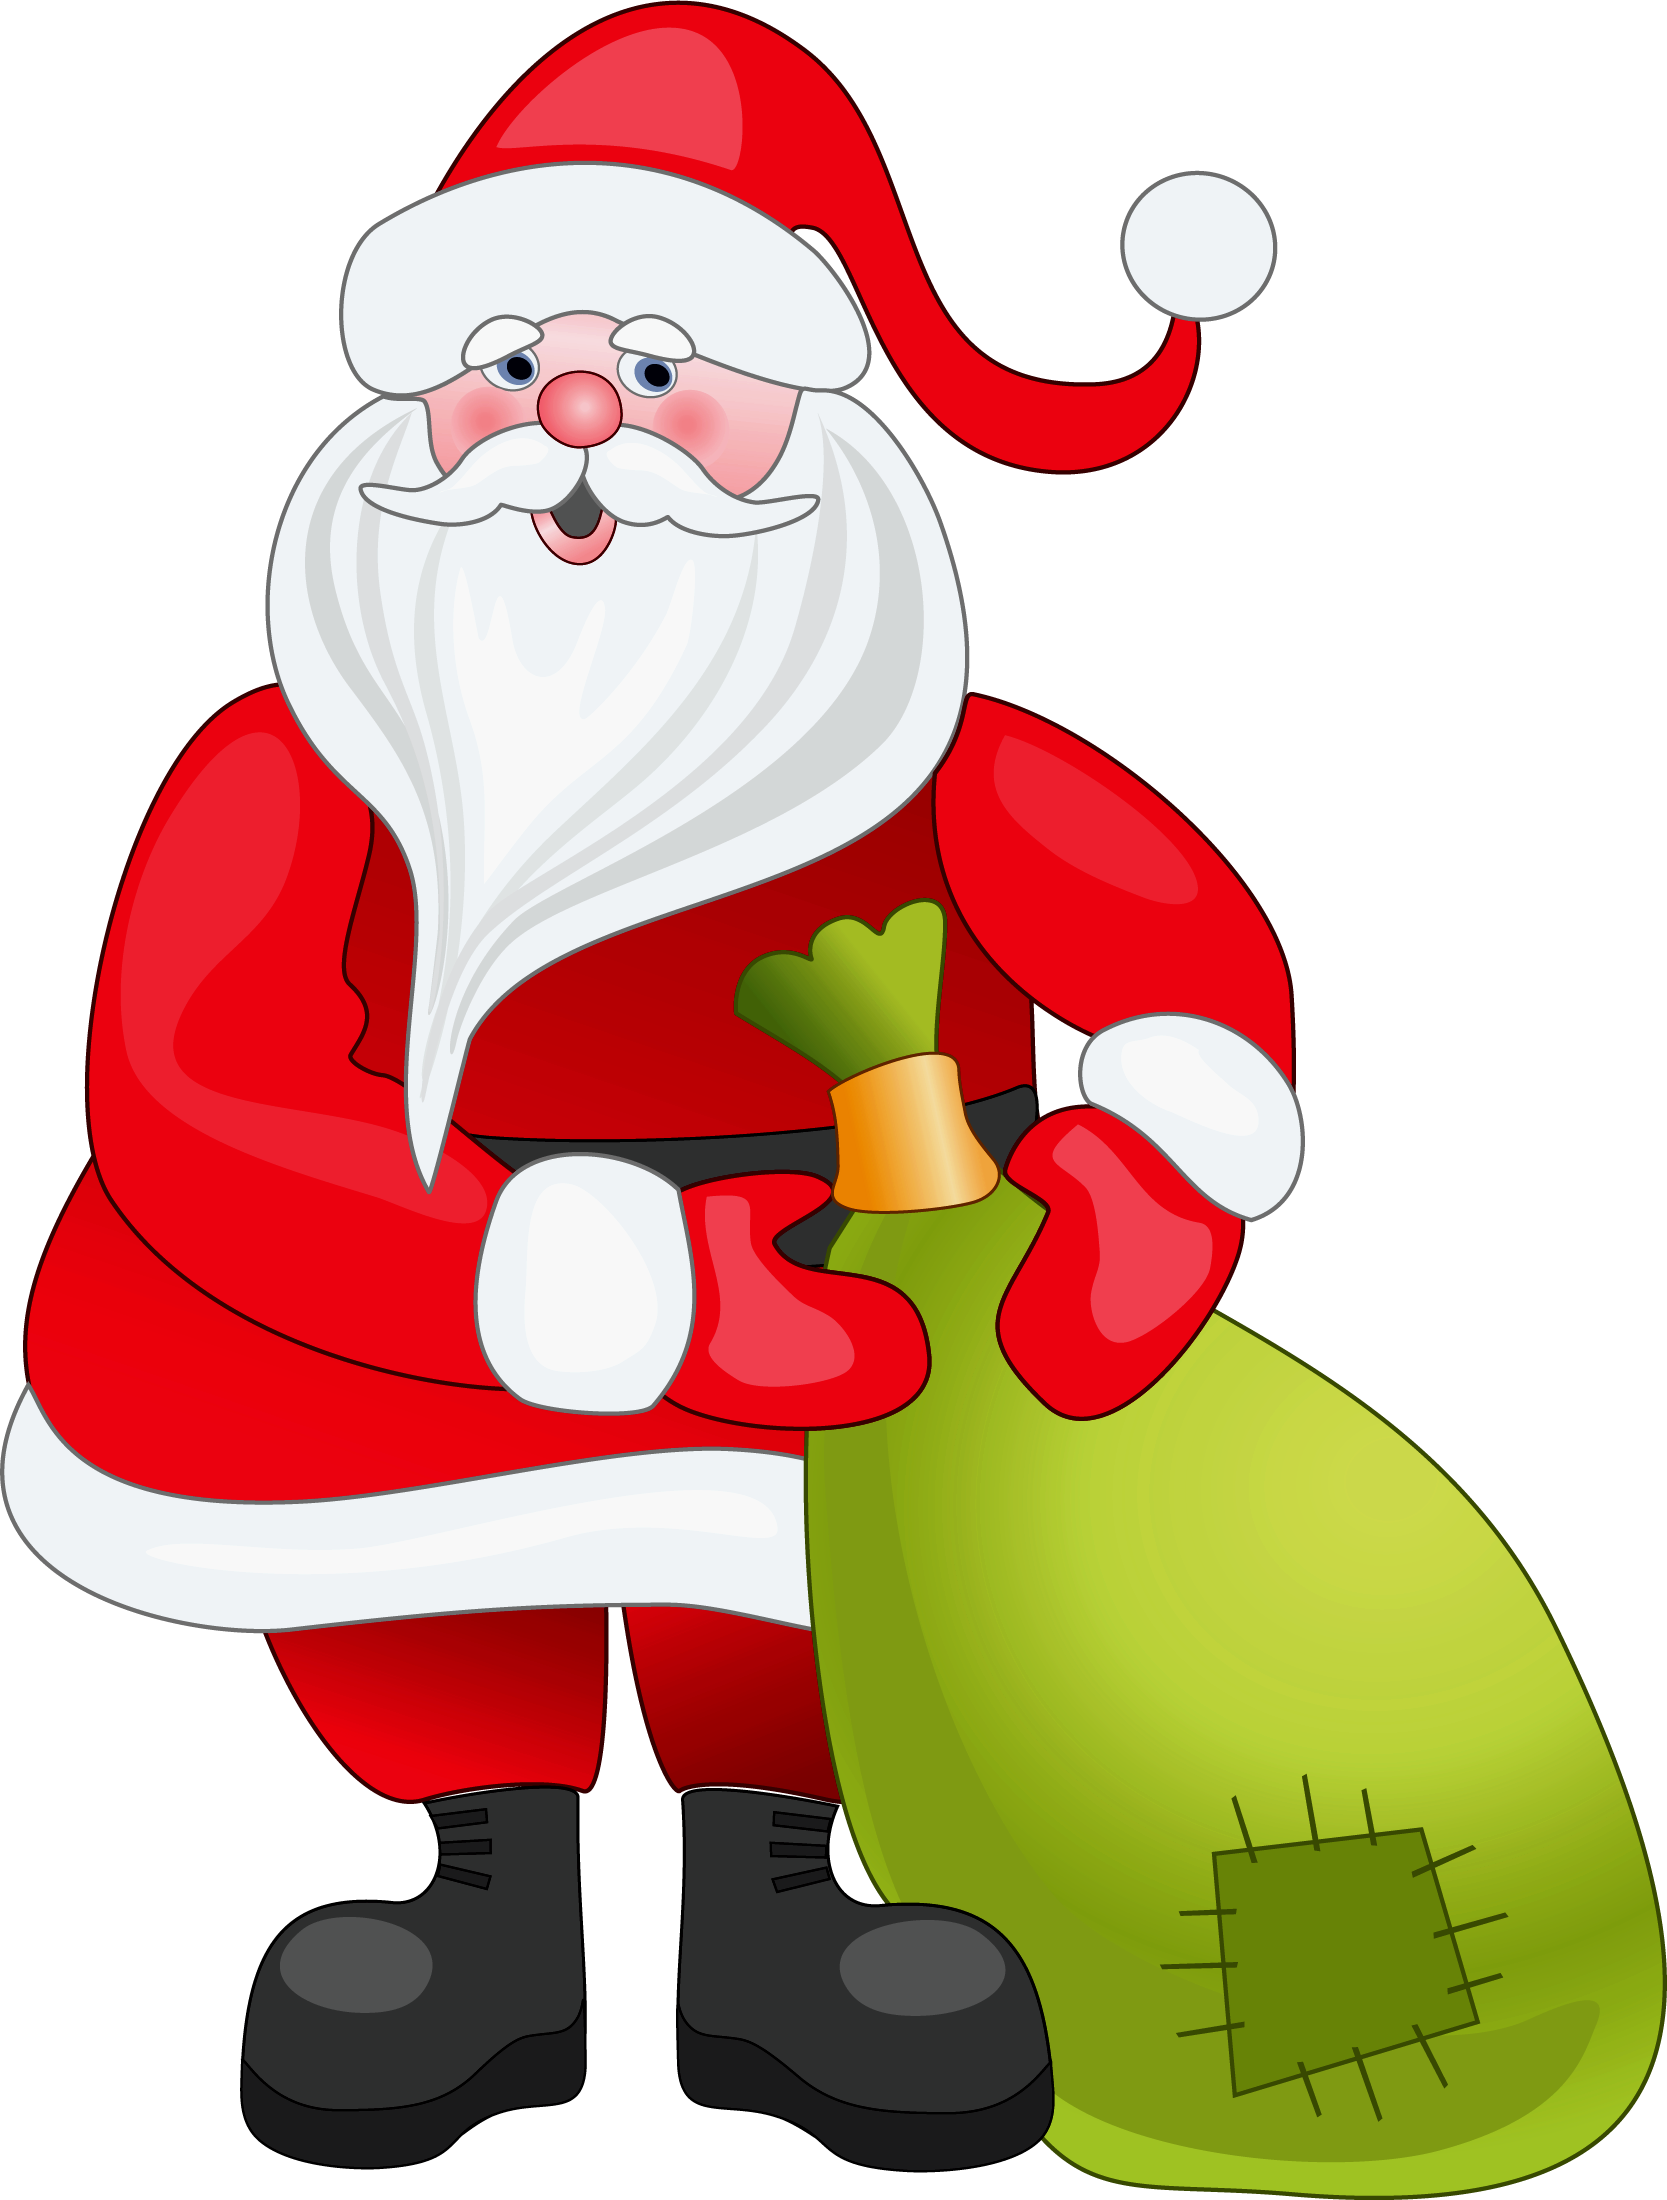 hight resolution of 58 free santa clipart cliparting pictures od santa claus clipart santa claus images